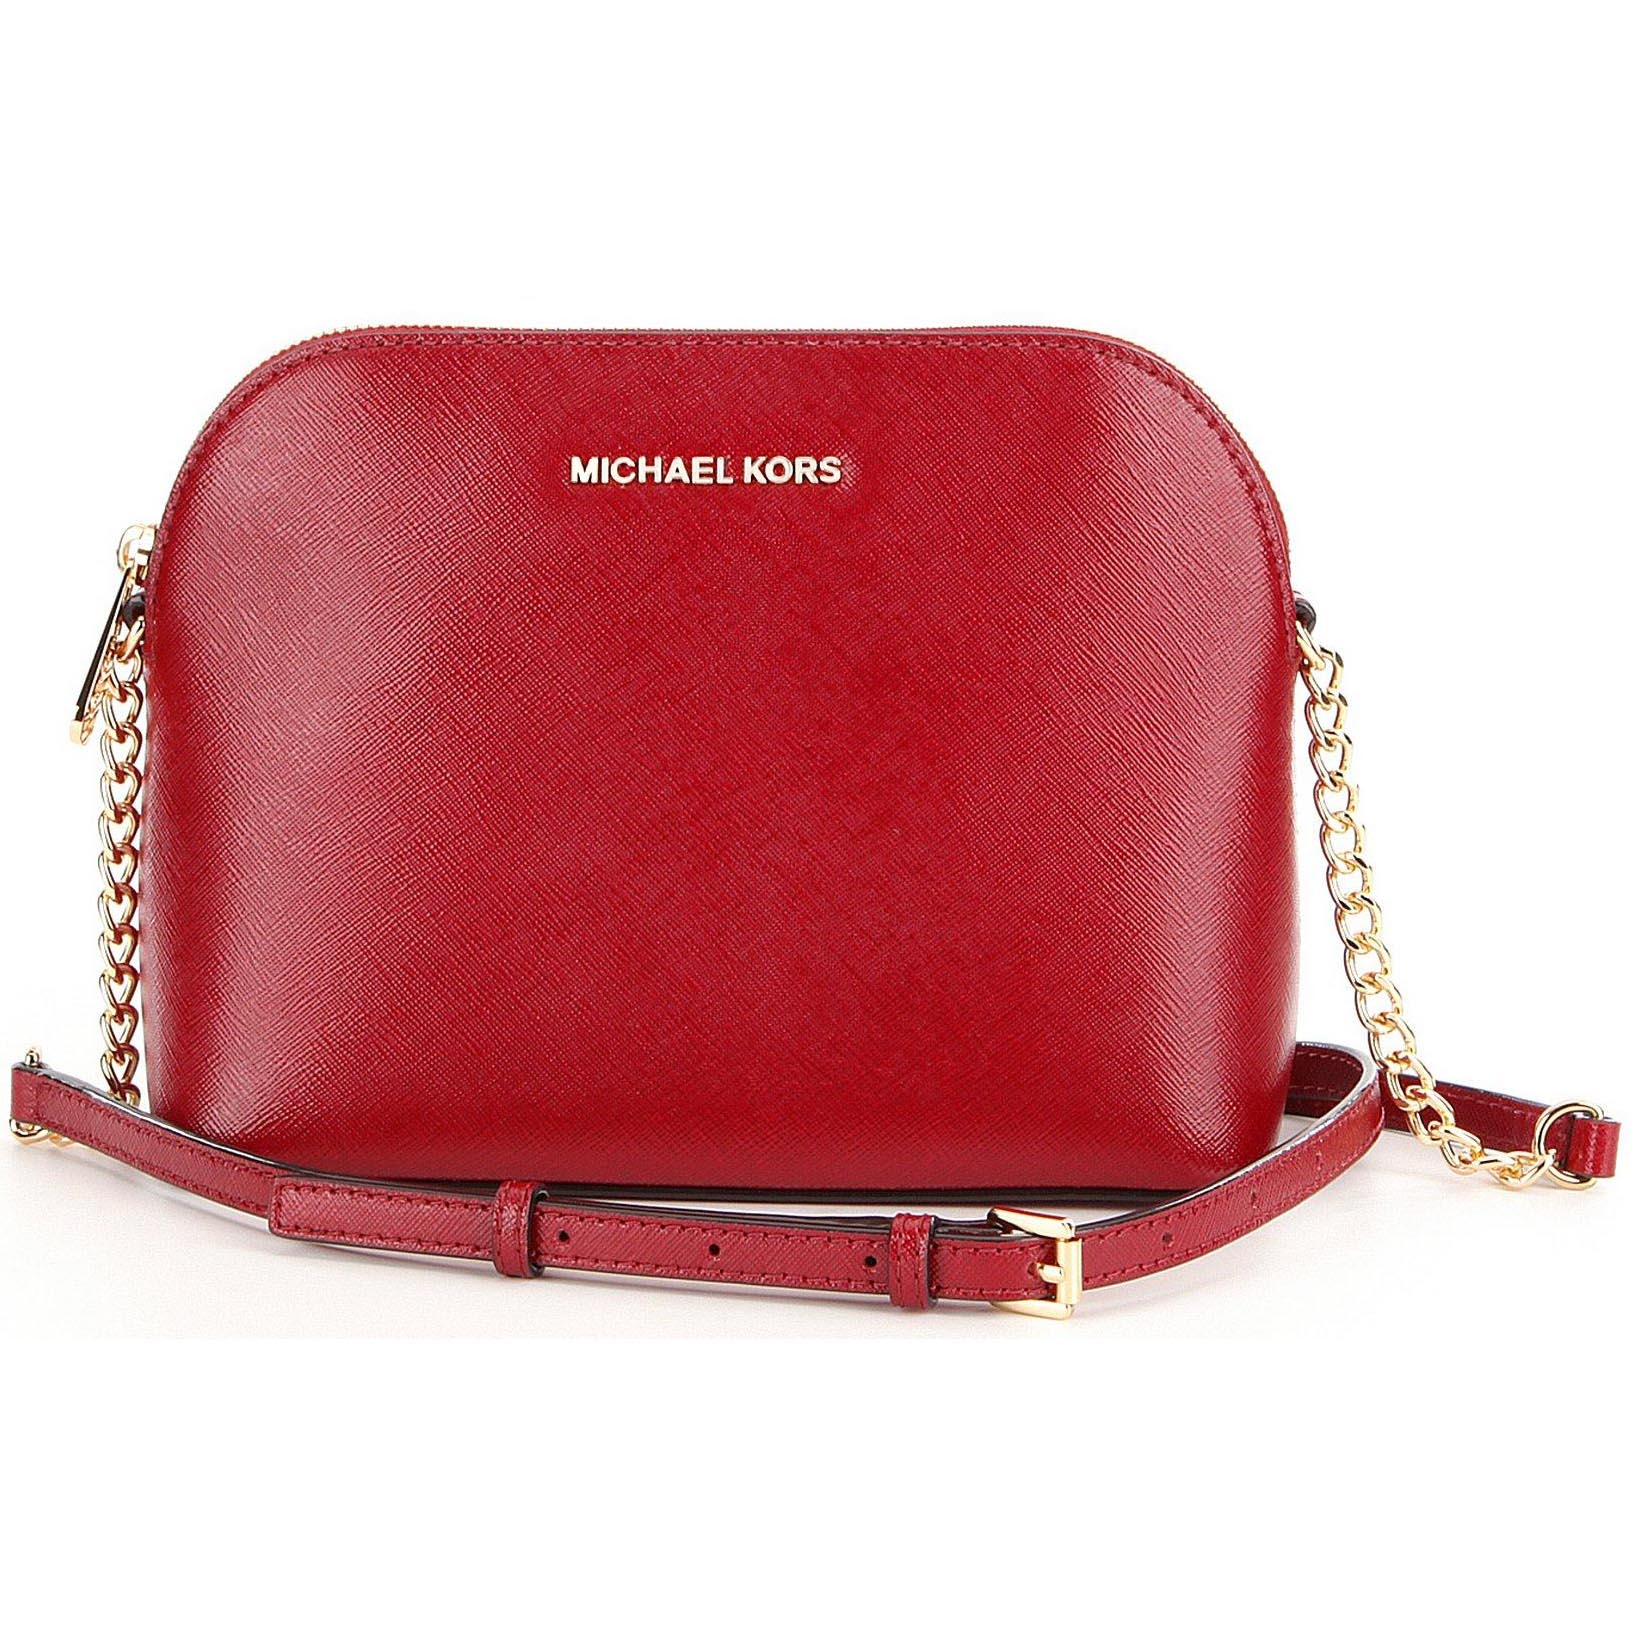 Michael Kors Cindy Large Dome Crossbody Cherry Red # 32S6GCPC3A